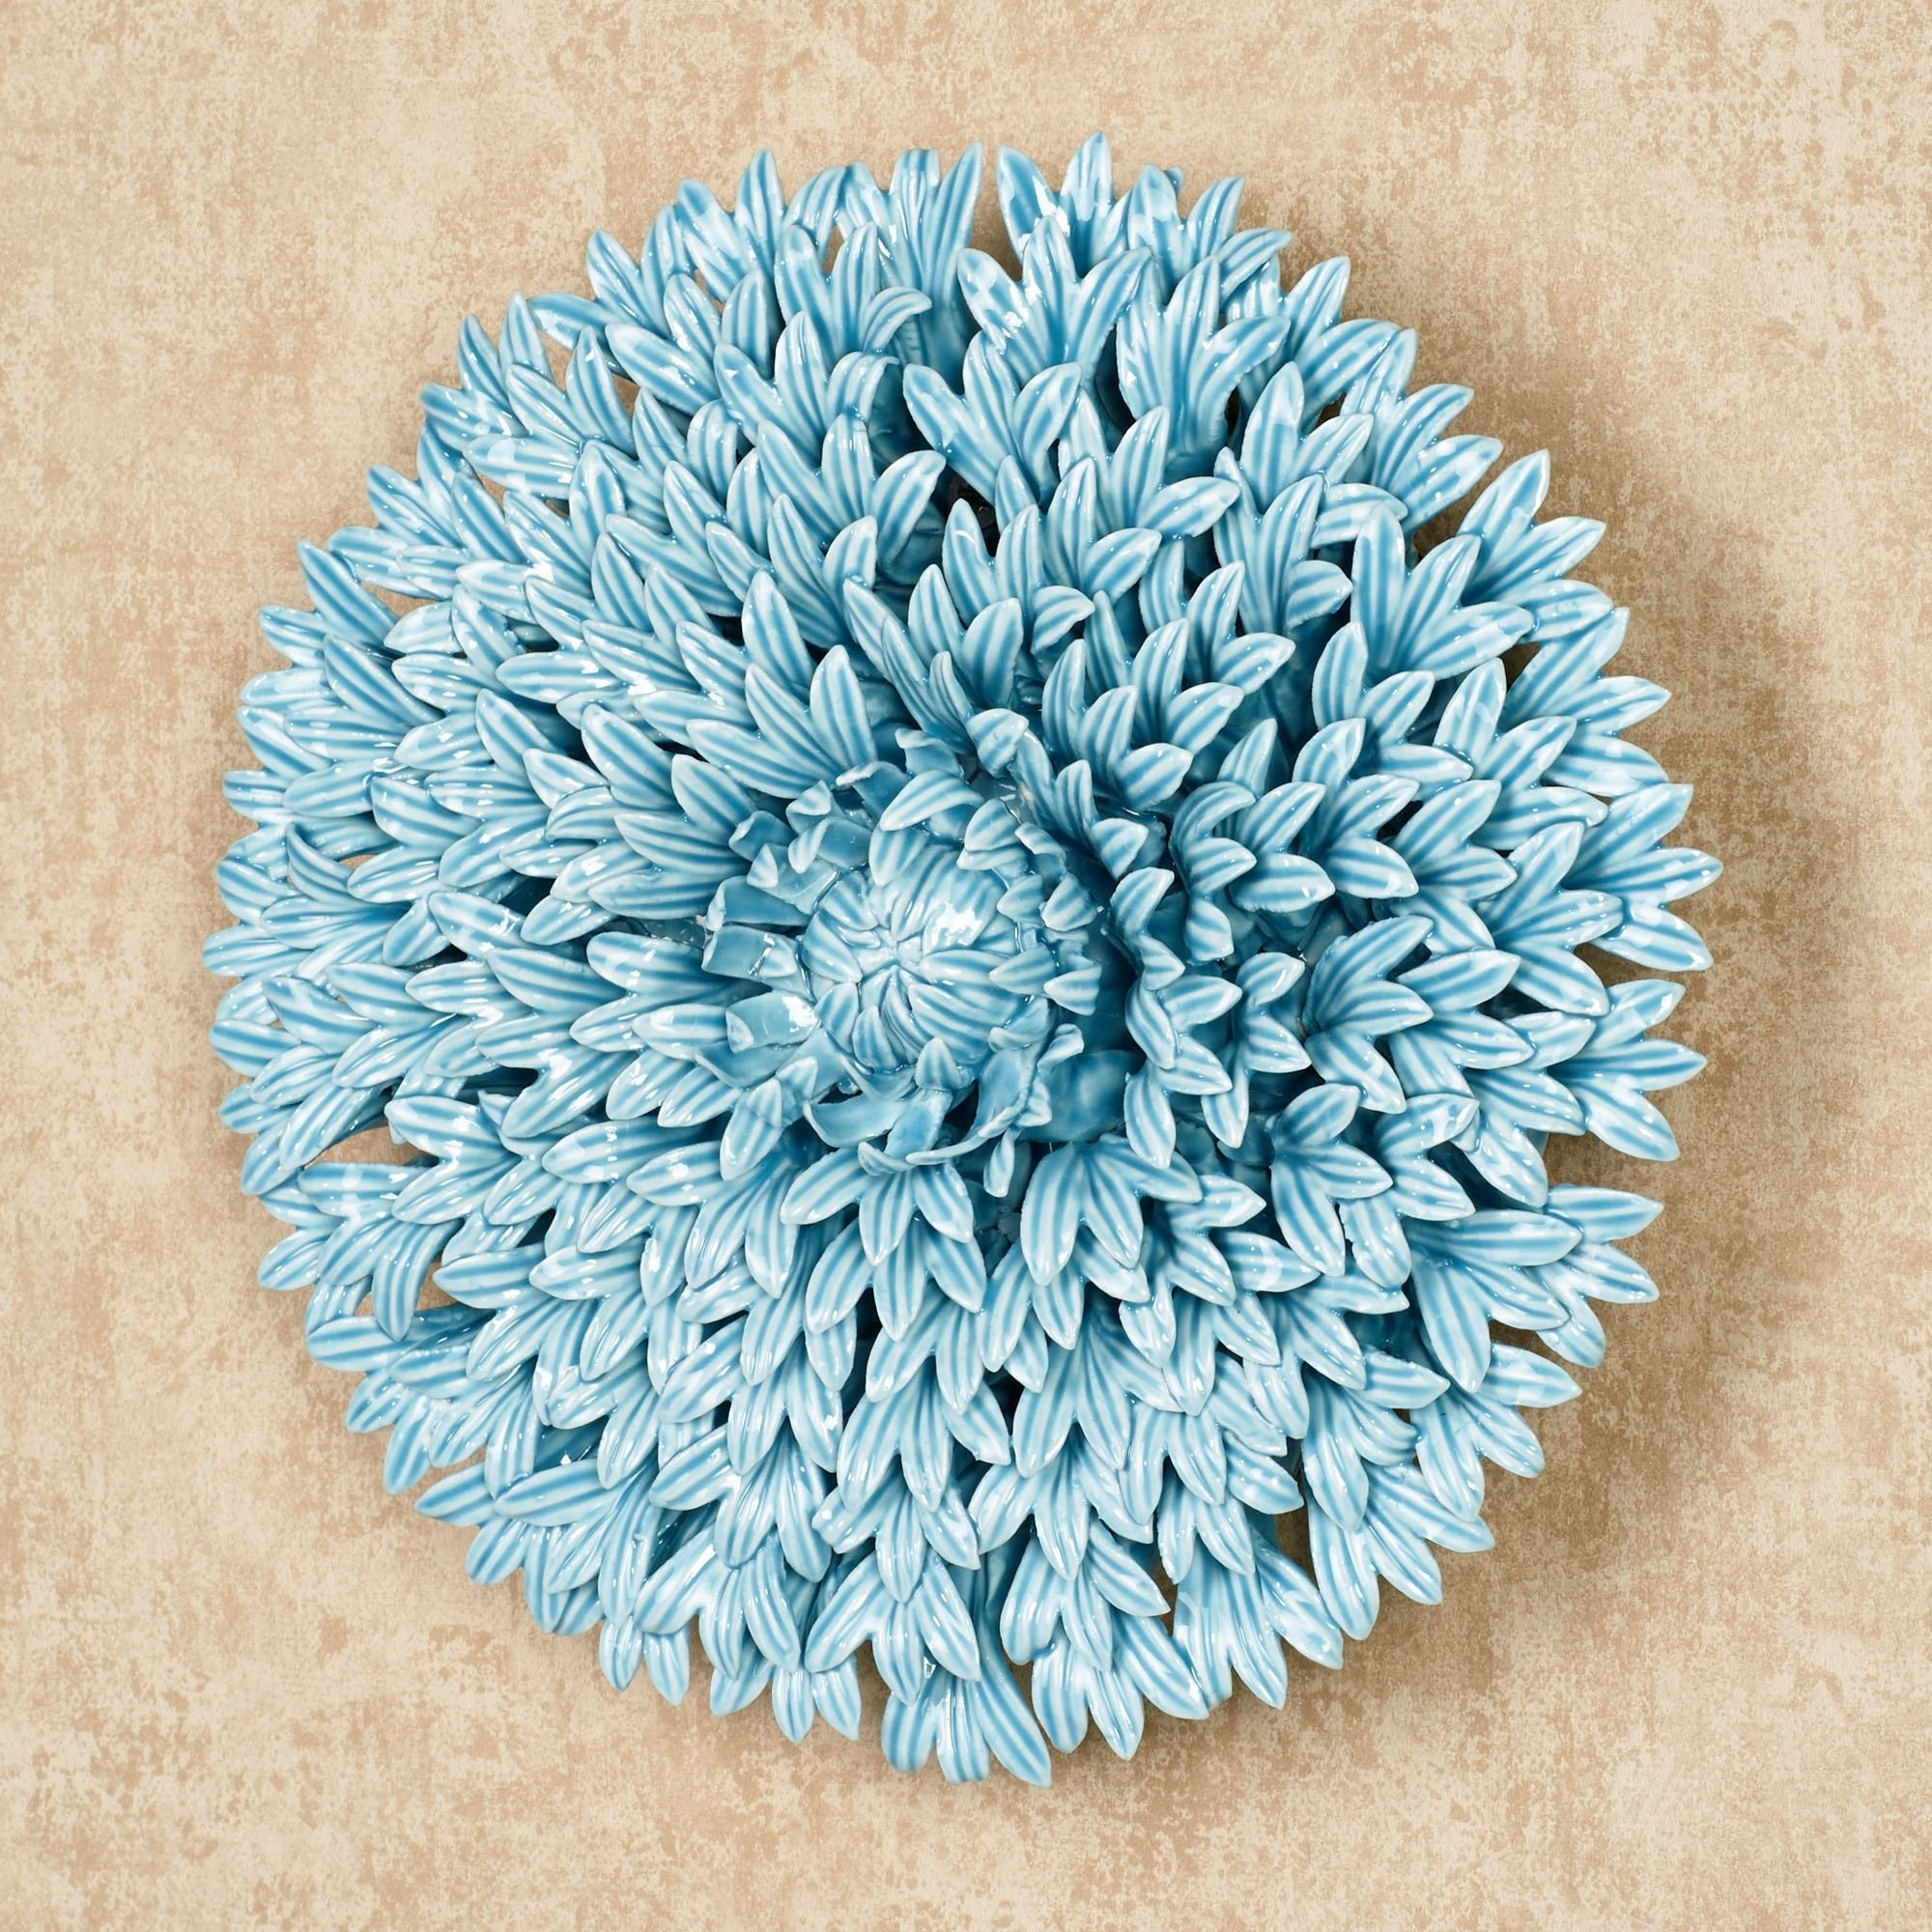 Most Recently Released Blue Wall Art, Blue Porcelain Flower Wall Art Ceramic Flower Wall Within Ceramic Flower Wall Art (View 10 of 15)